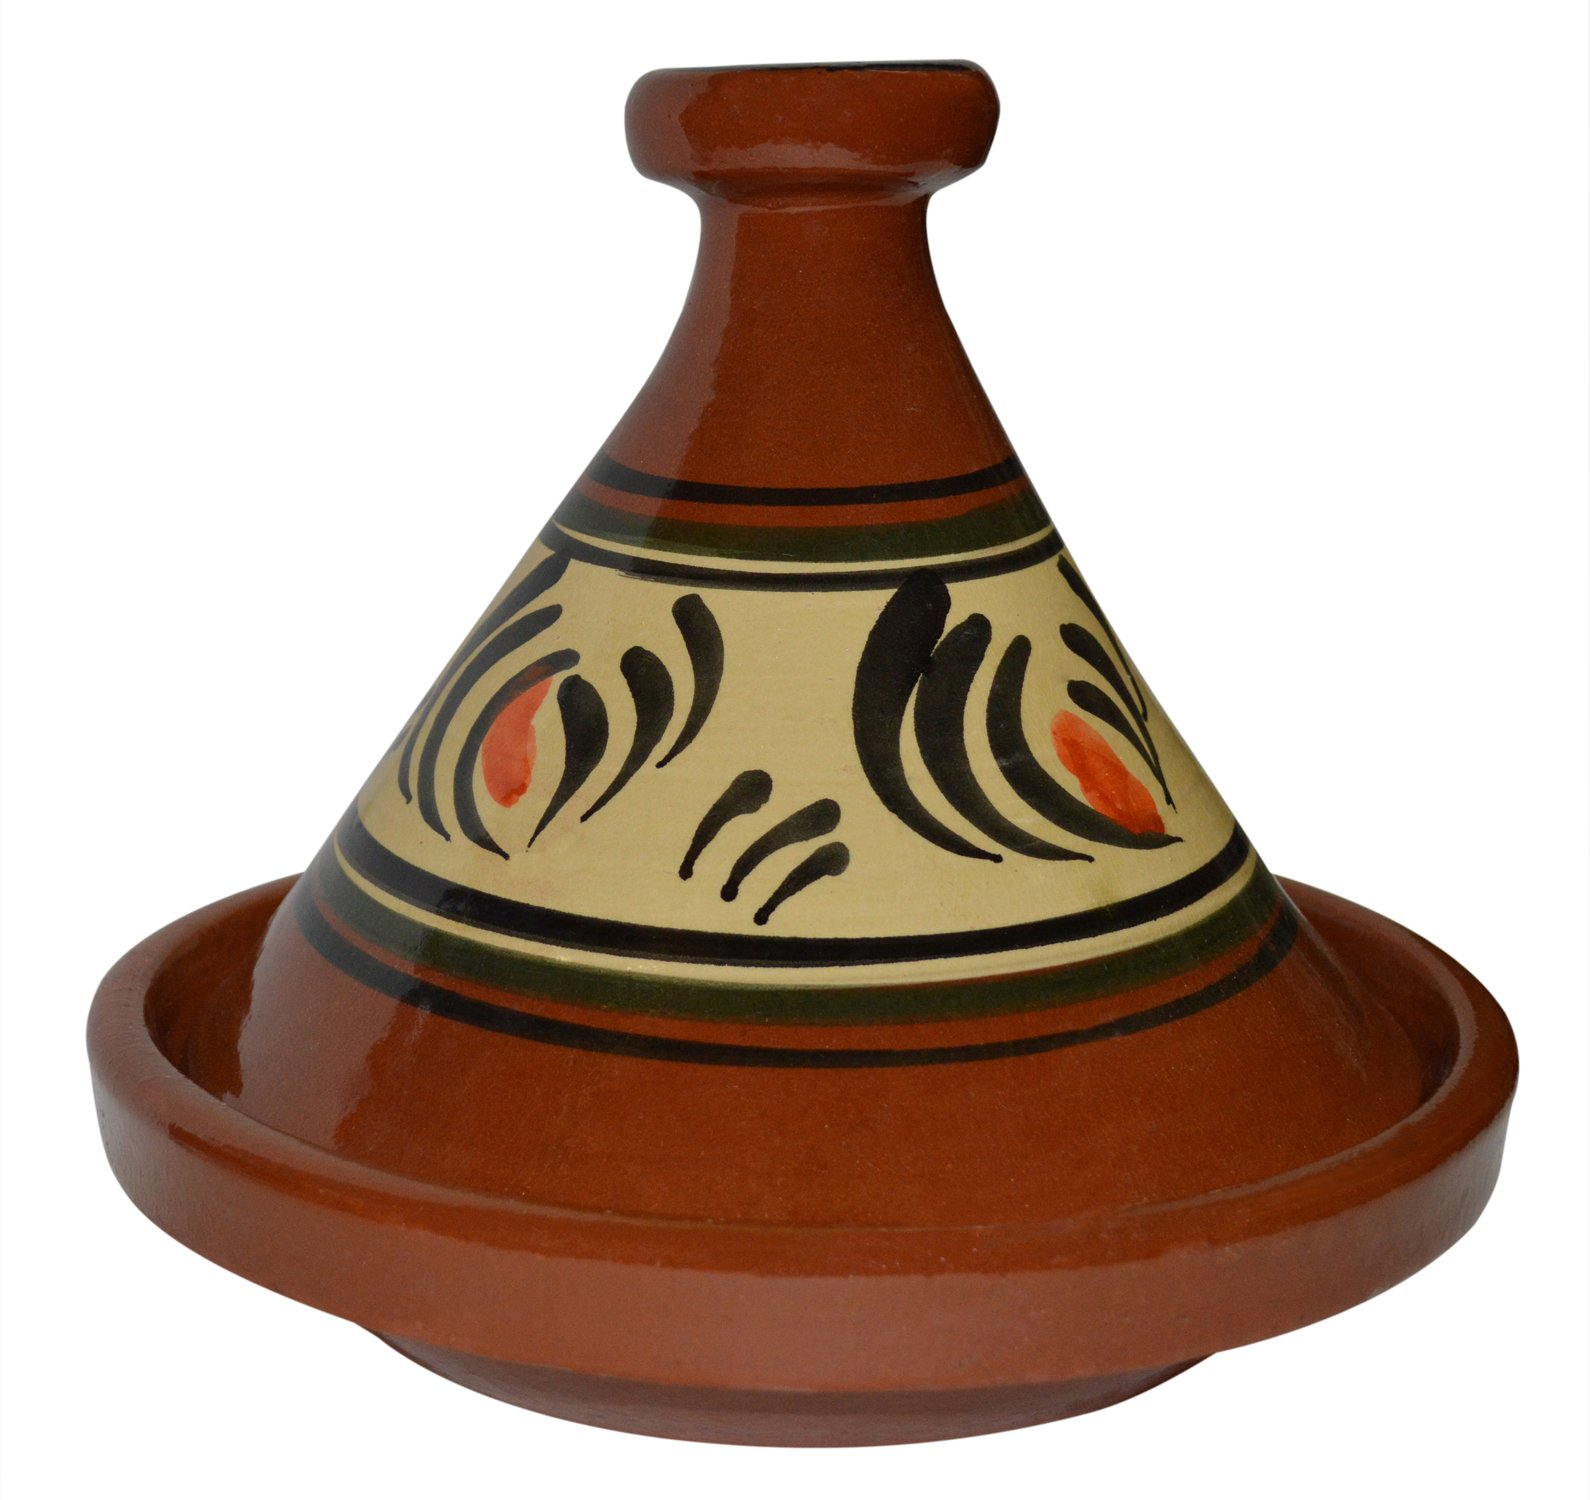 Moroccan Lead Free Cooking Tagine 100% handmade Clay Cookware by Cooking Tagines